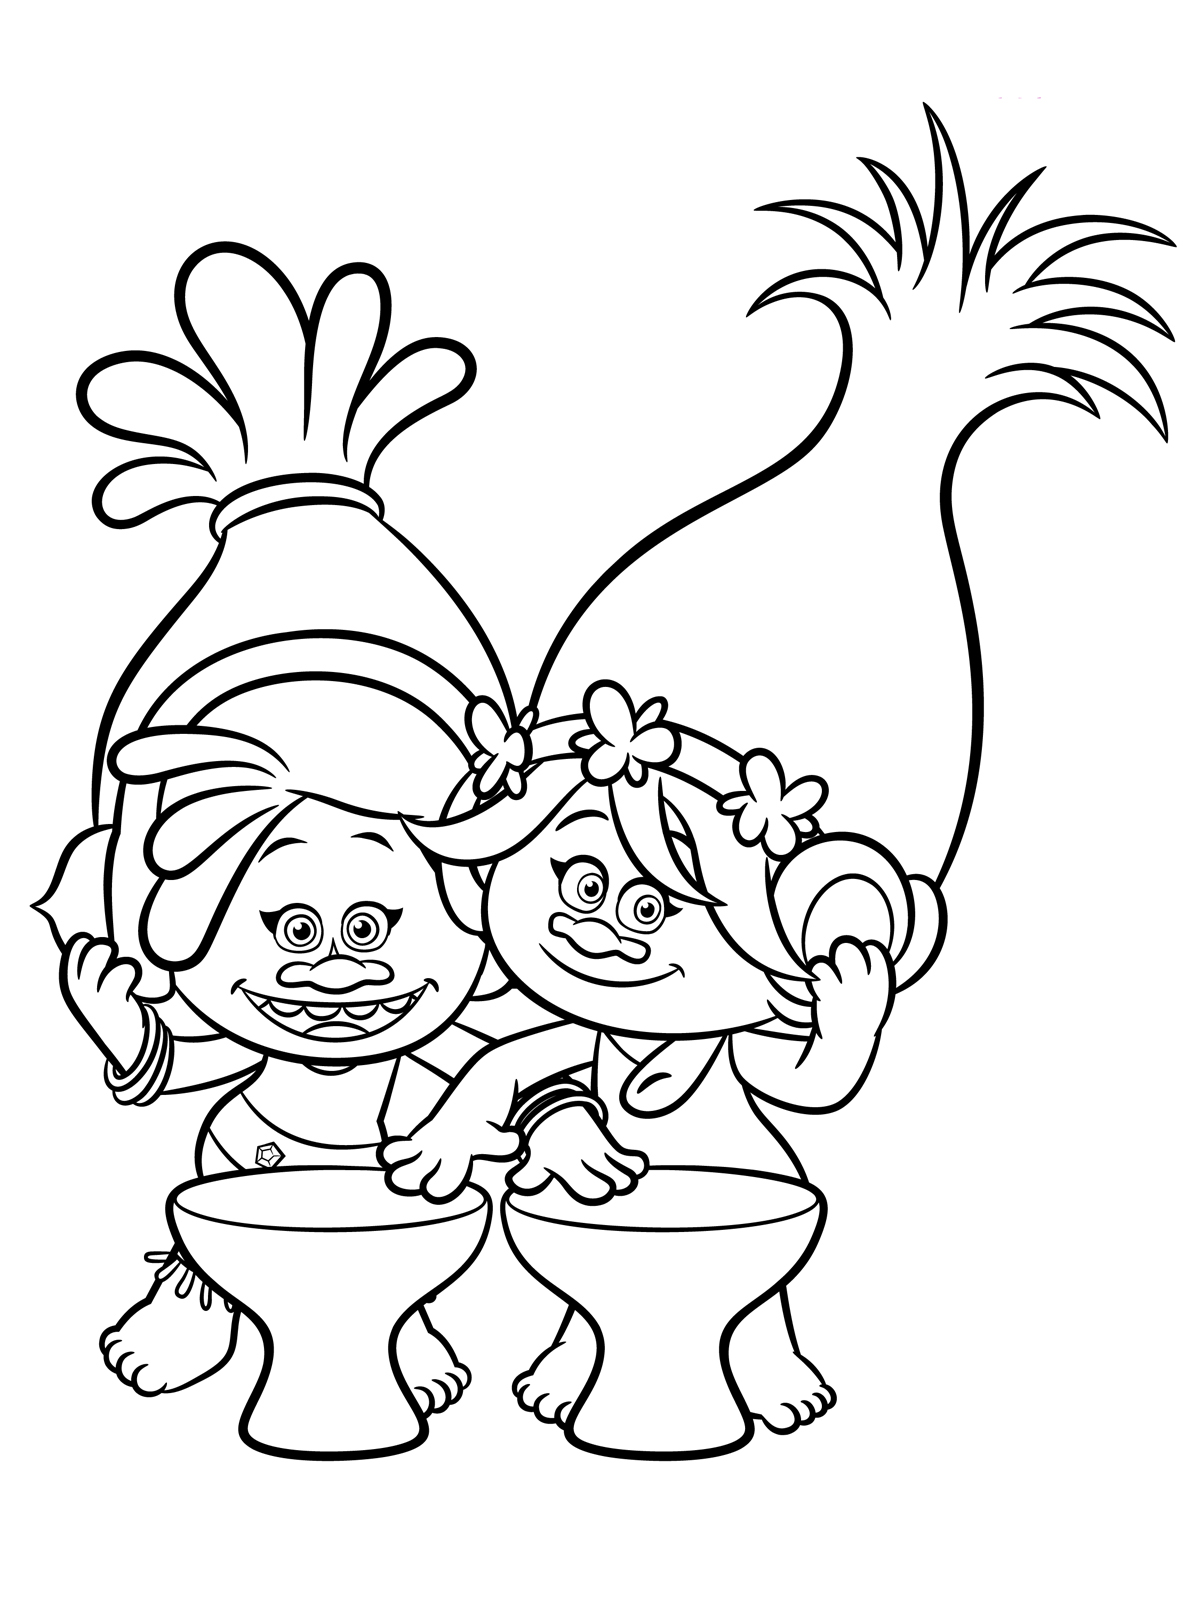 cartoon trolls pictures trolls coloring pages to download and print for free trolls cartoon pictures